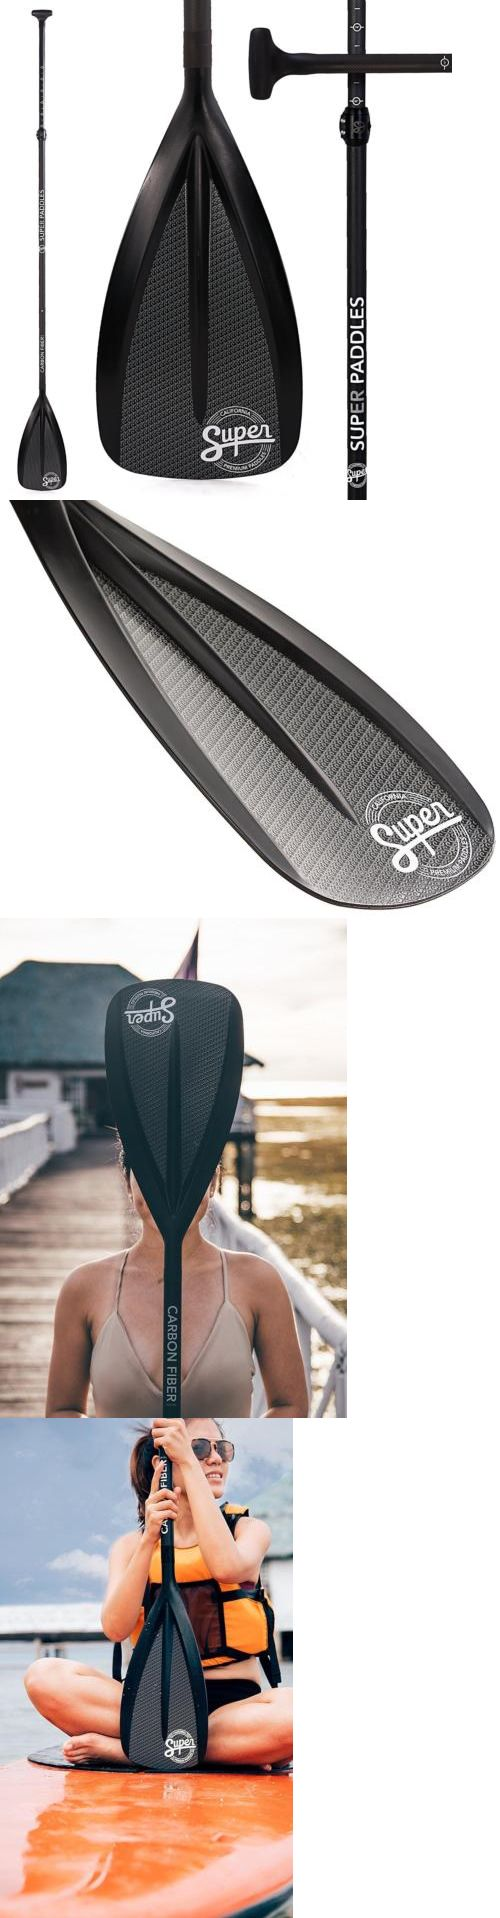 Deppen custom wood canoe paddles - Stand Up Paddles 177505 Carbon Fiber Sup Paddle 3 Piece Adjustable Stand Up